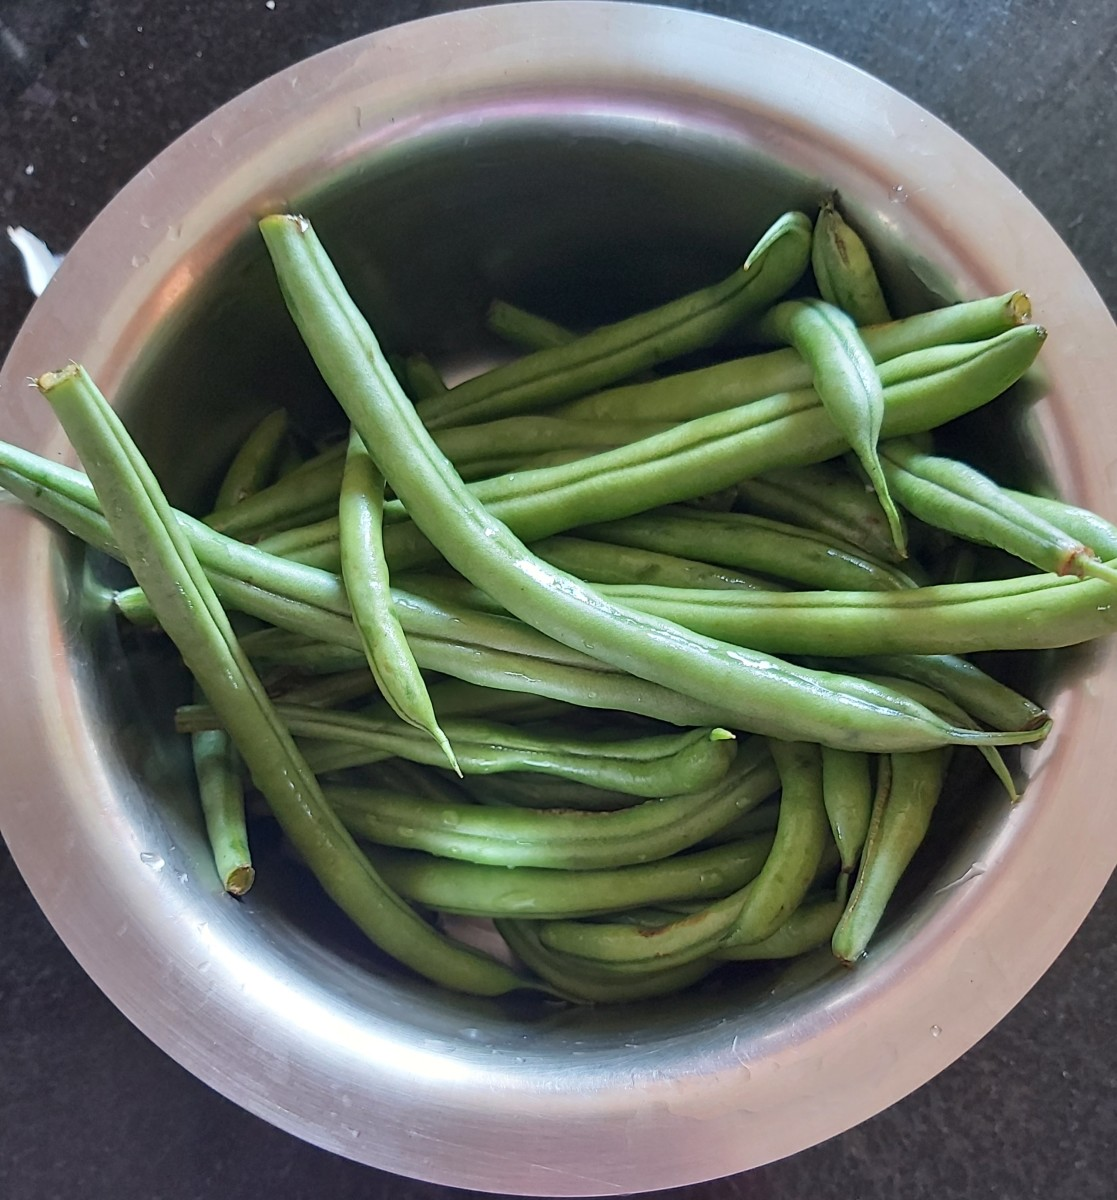 Wash and trim the French beans. Remove the fibrous strings if any.